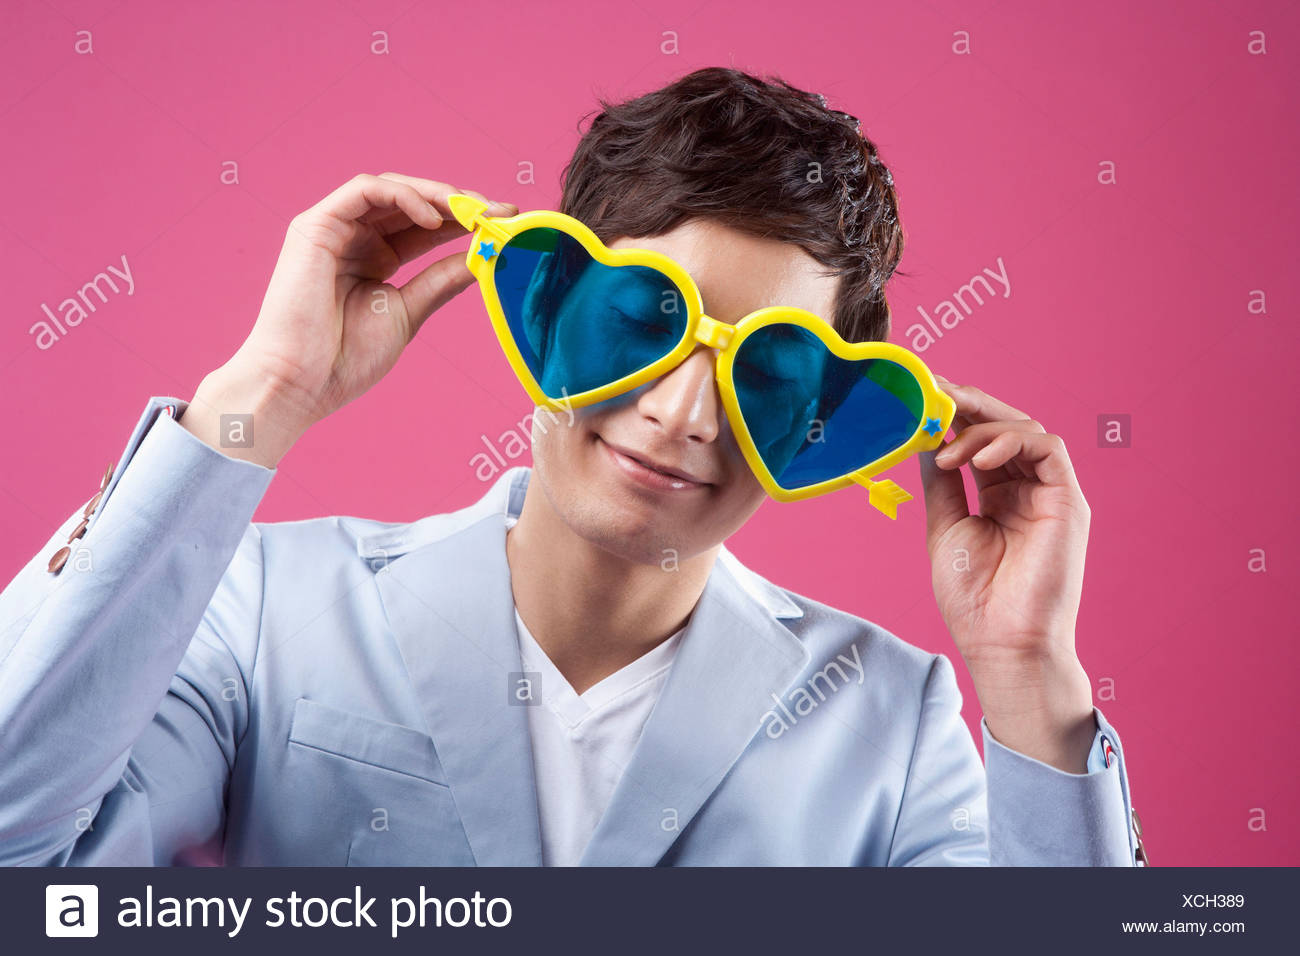 fff6aa2289cb8 A man wearing the heart shaped glasses Stock Photo  283117529 - Alamy